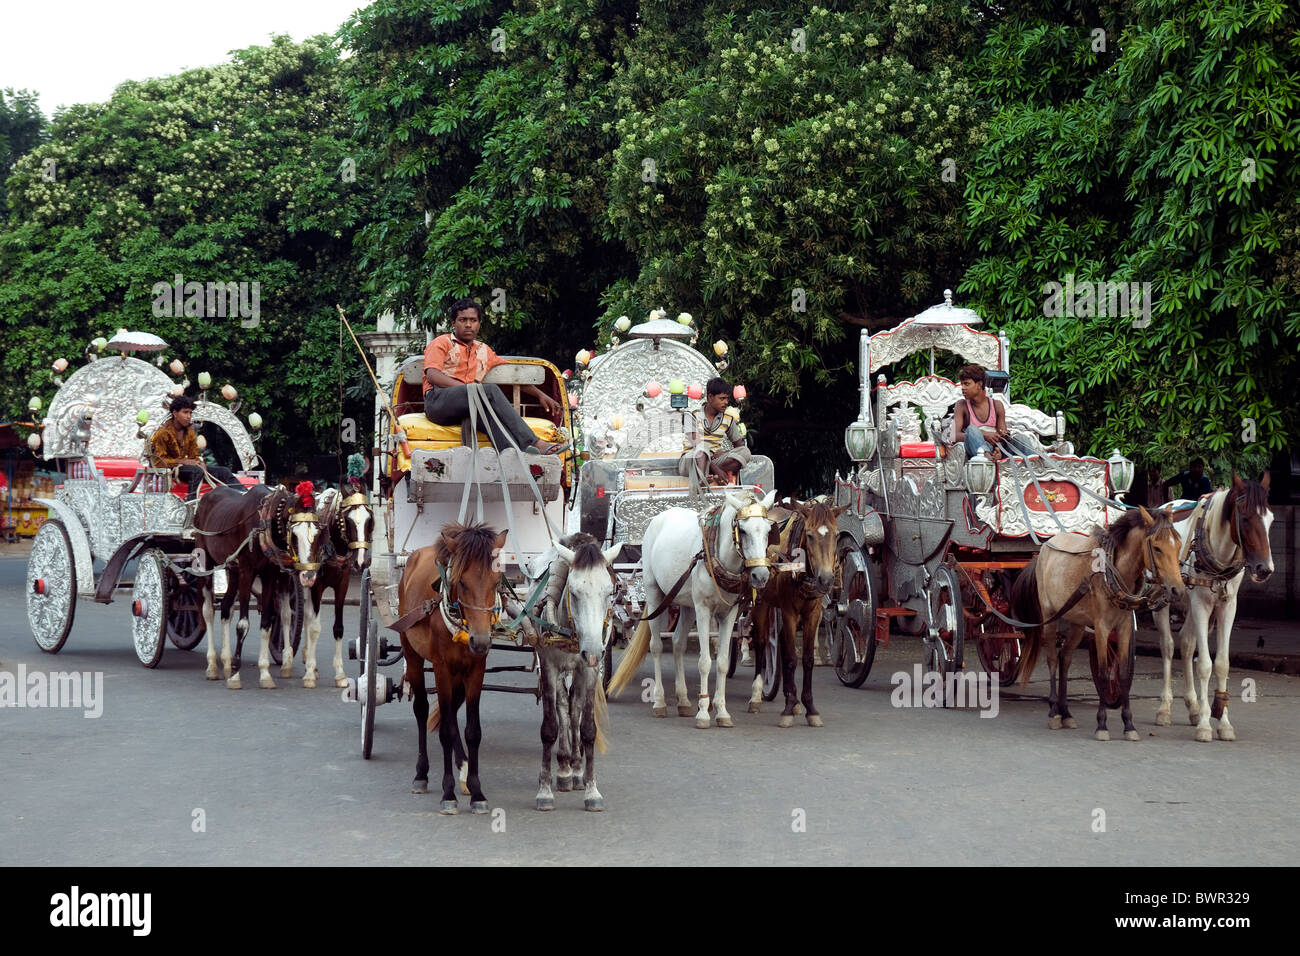 Richly ornamented horse carriages await visitors to Kolkata's Victoria Memorial - Stock Image